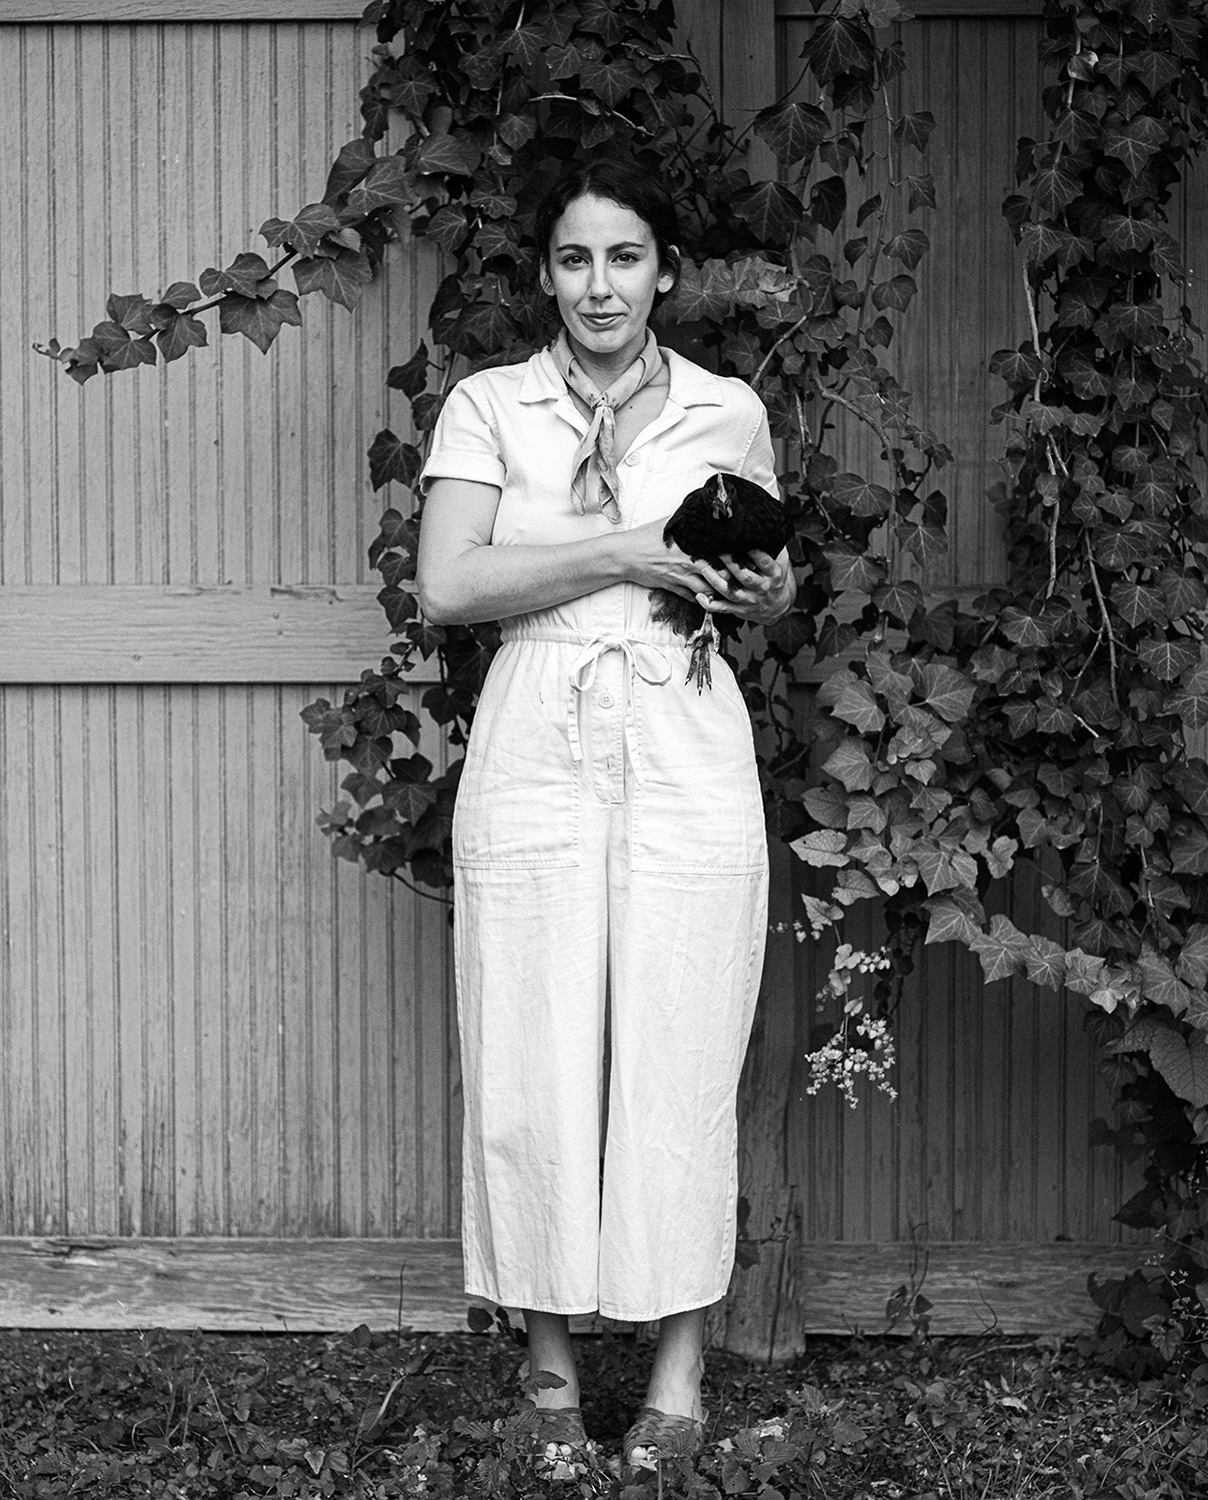 Gabriela Santiago holds a chicken for a portrait by conceptual photographer Josh Huskin.